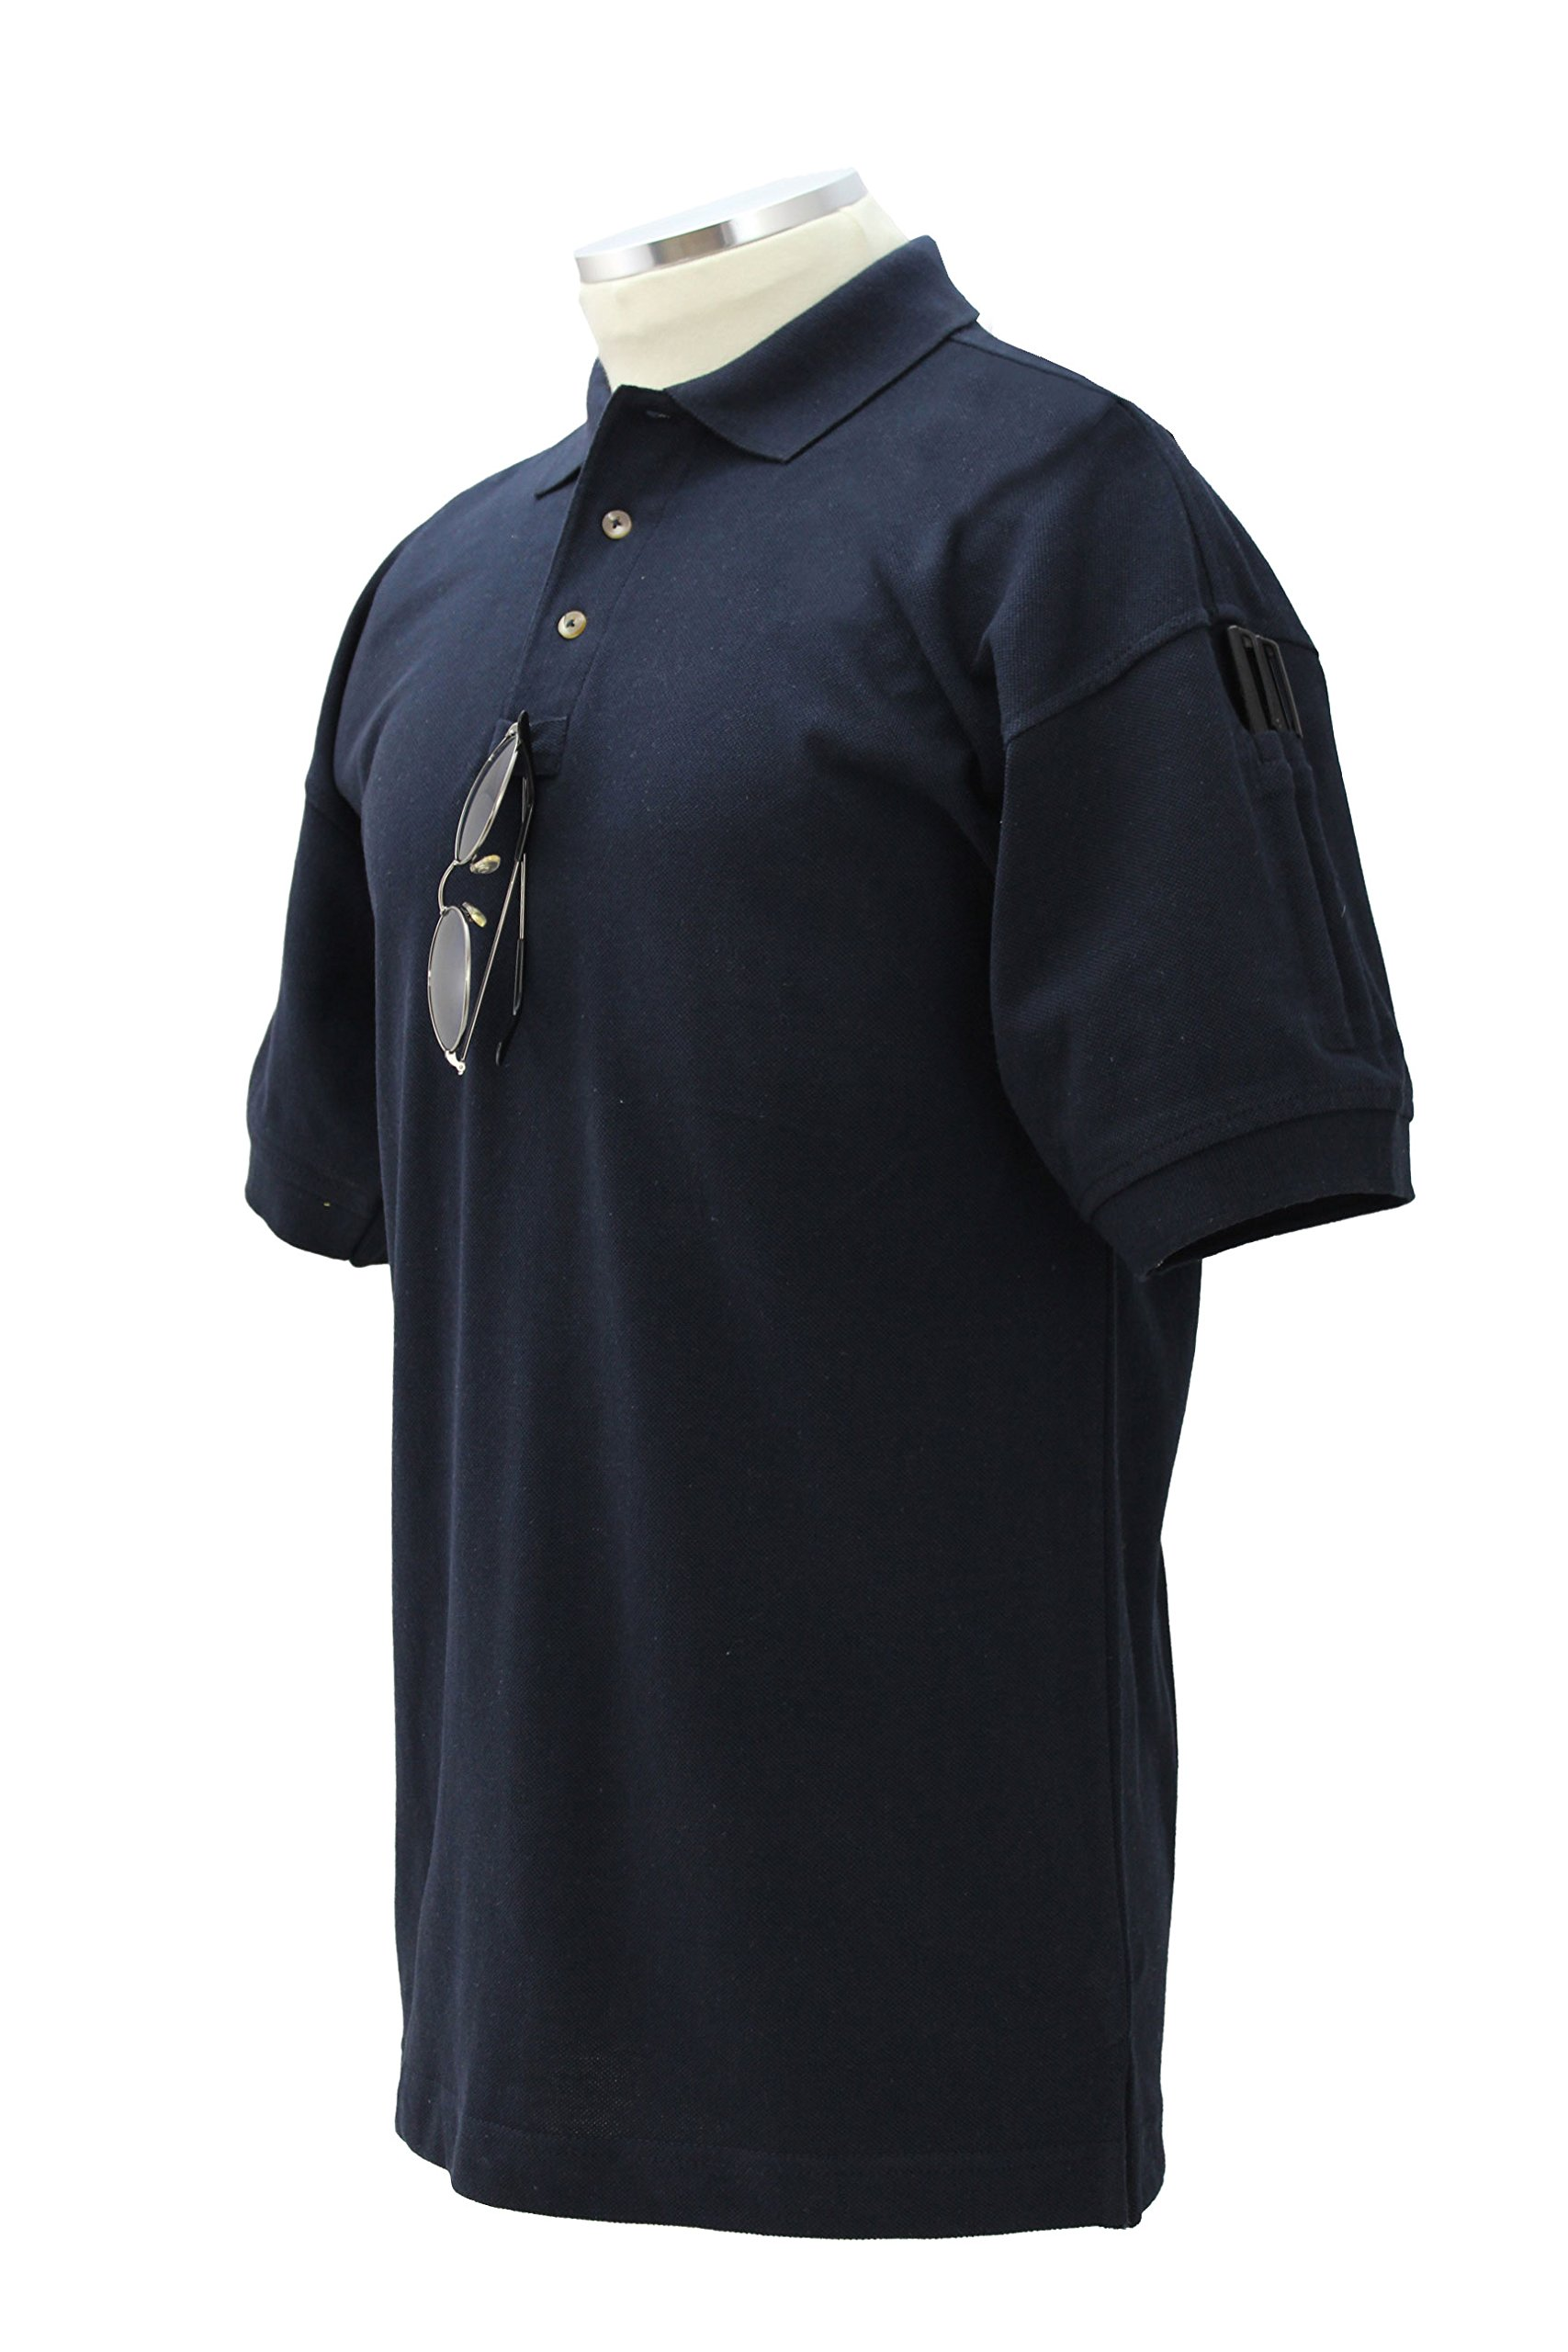 First Class PRESHRUNK 100% COTTON TACTICAL SHORT SLEEVE MEN'S POLO SHIRT Small Navy Blue by First Class